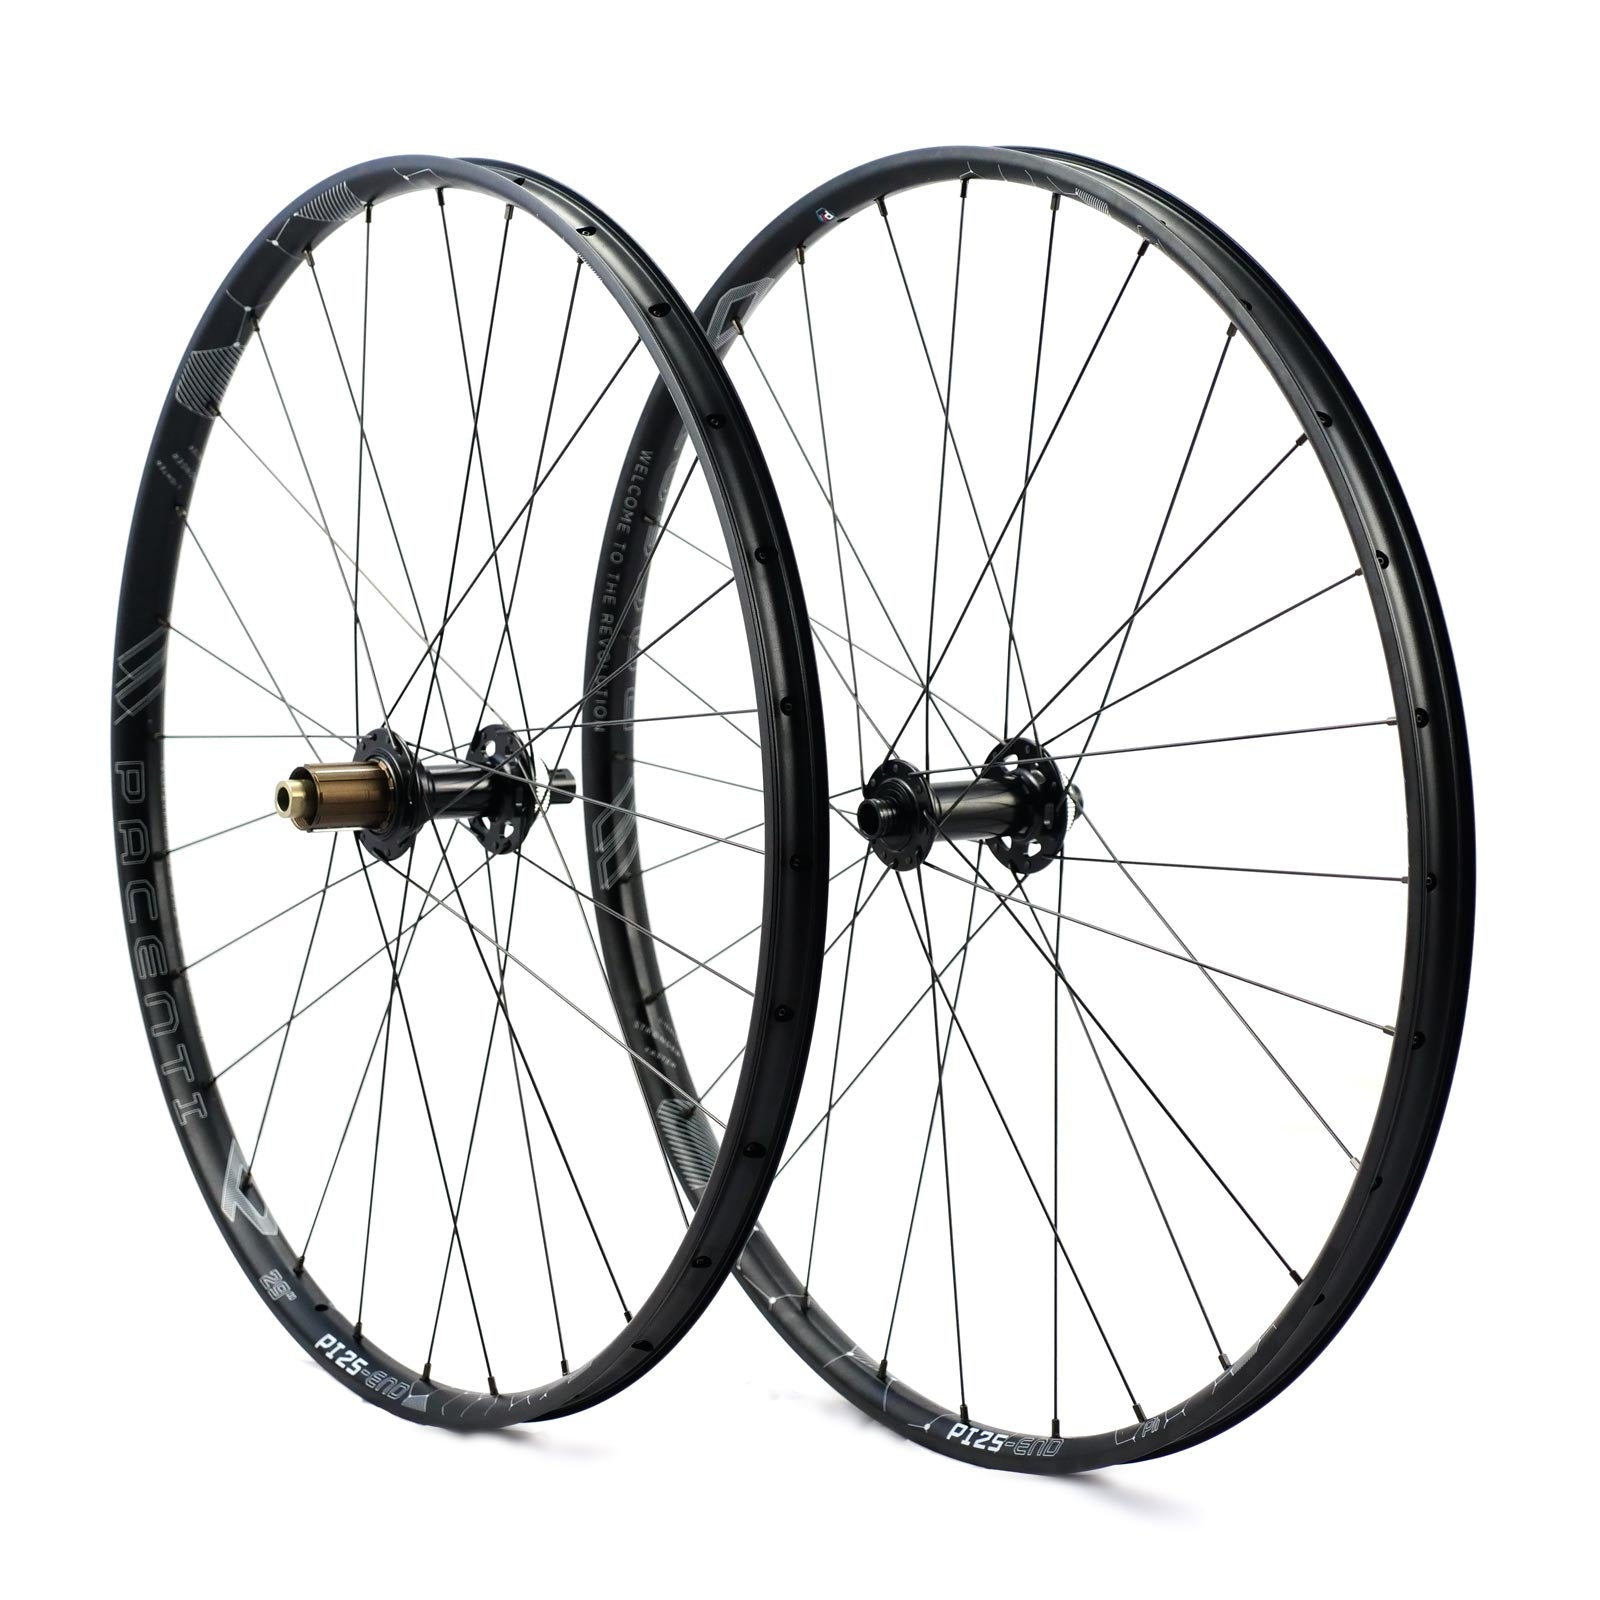 "PI25-TXC Wheelset 29"" 142mm C-Lock"